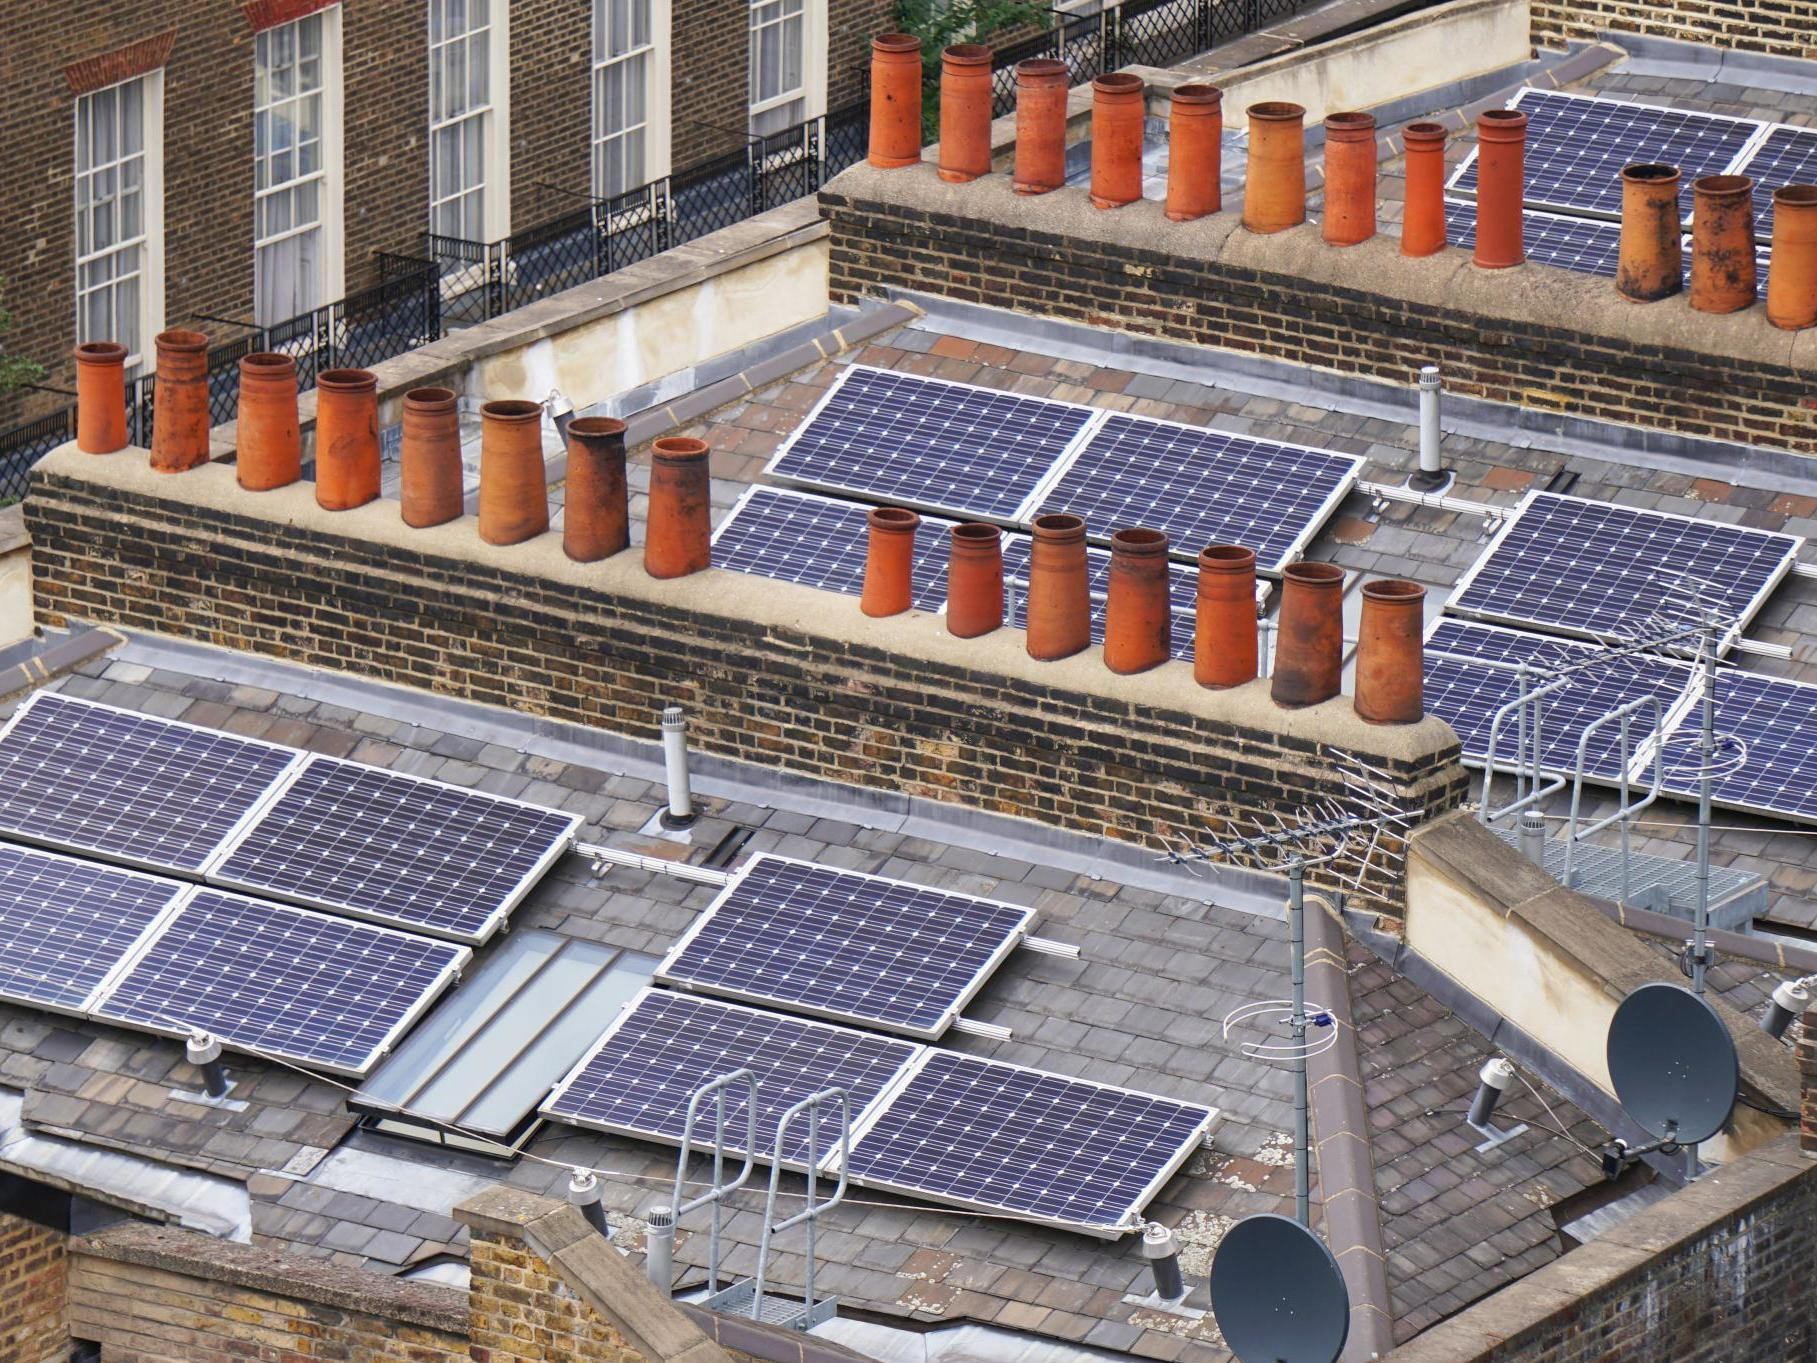 Climate crisis: Huge VAT rise on solar panels makes installation 'entirely uneconomic', say experts